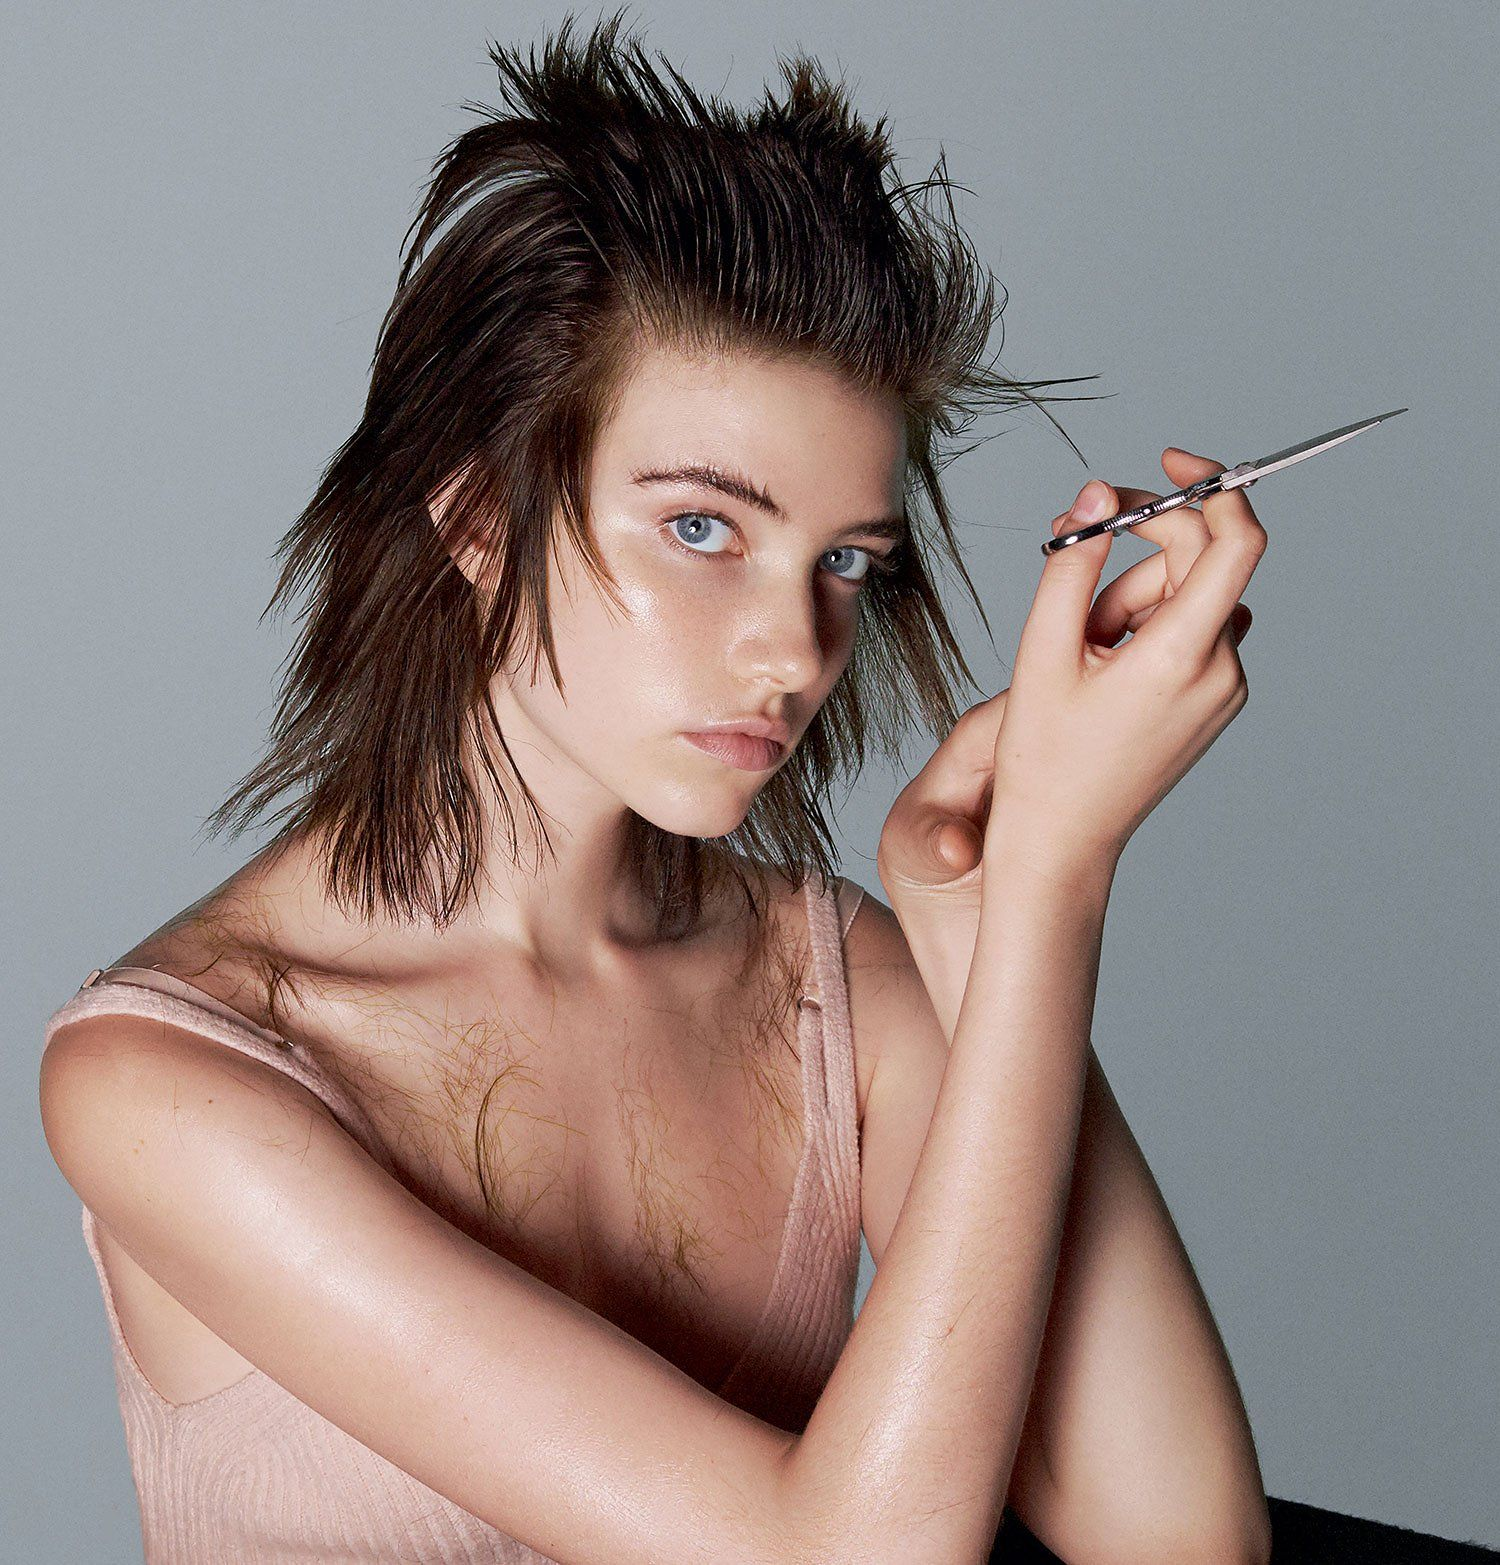 Model Grace Hartzel, whose career skyrocketed after she snipped her own jagged, rock-'n'-roll fringe, collaborated with hairstylist Guido Palau on her latest hair transformation.